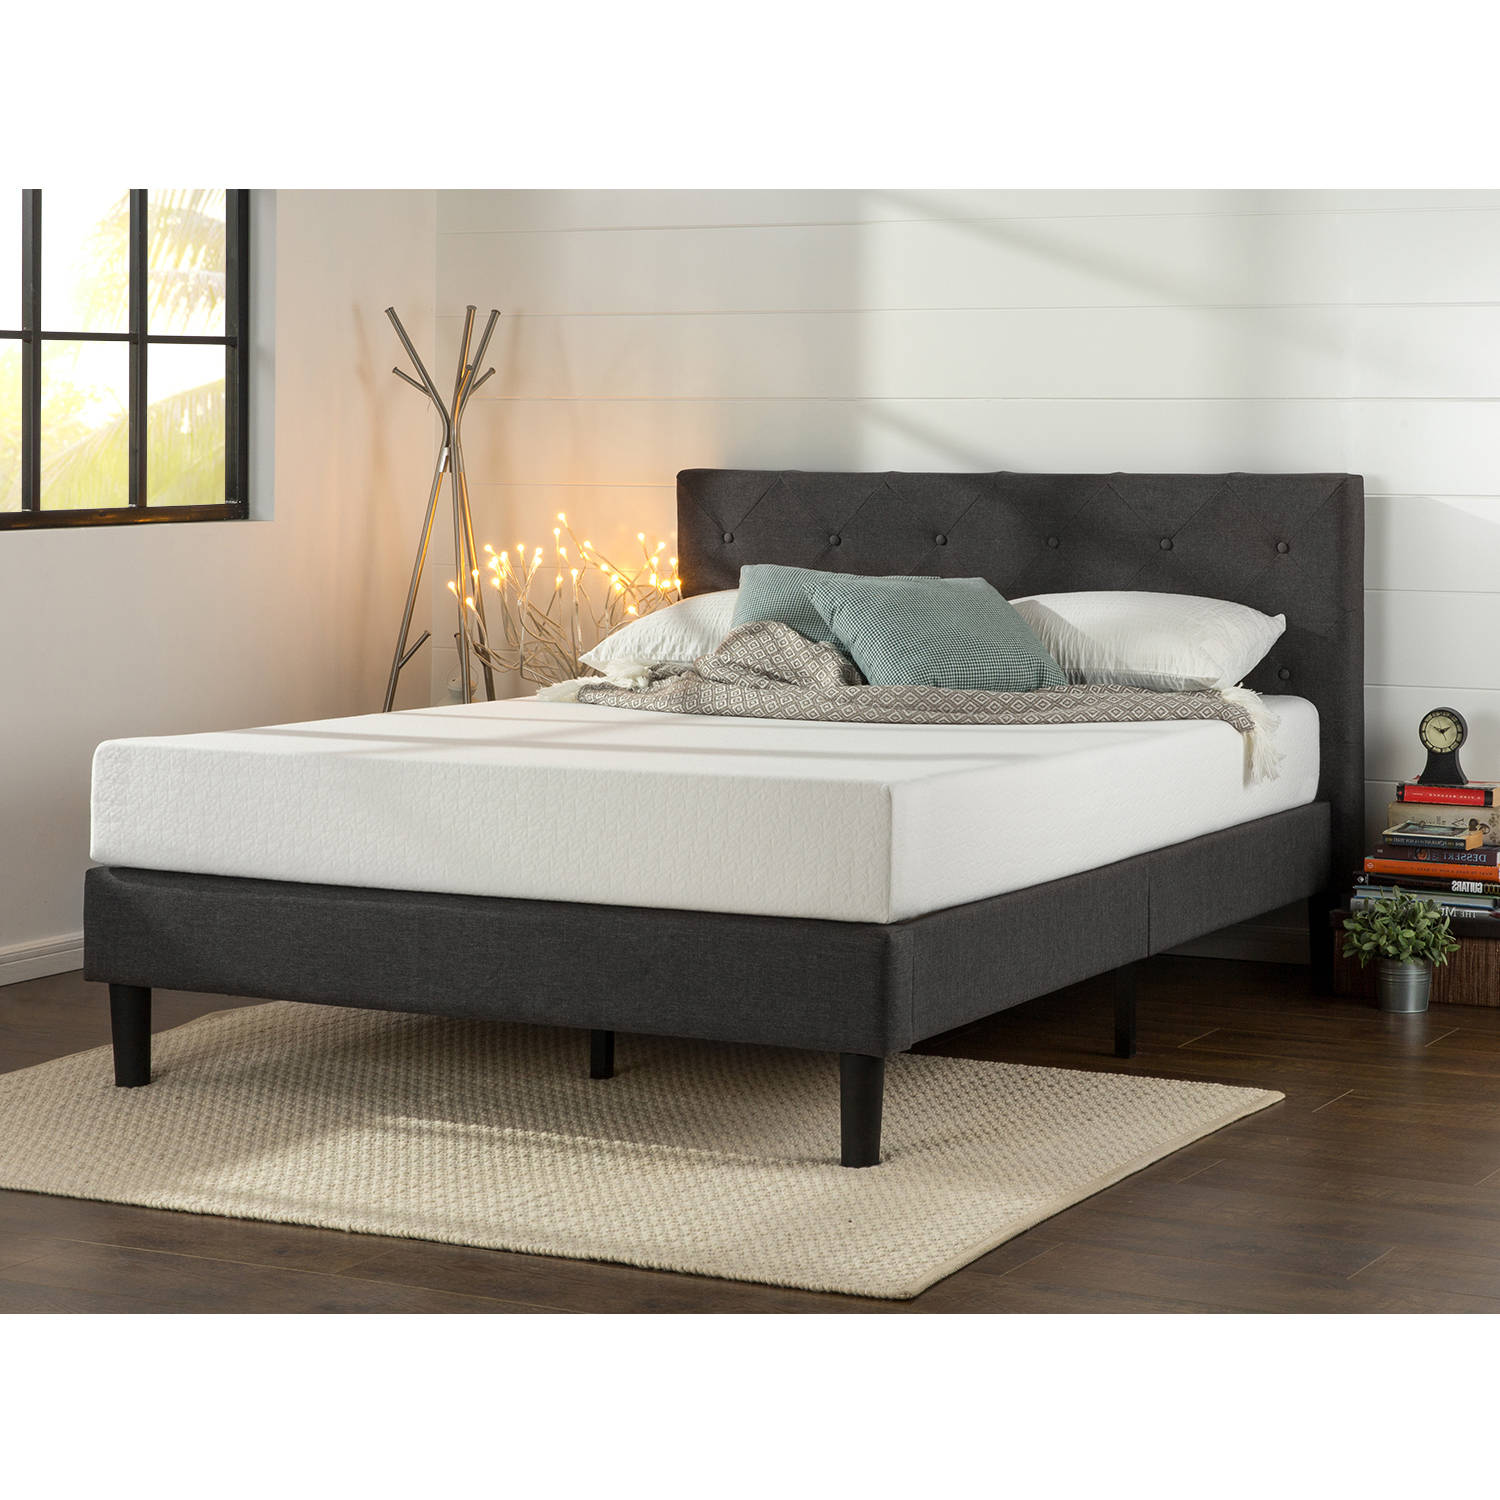 Zinus Upholstered Diamond Stitched Platform Bed, Multiple Sizes